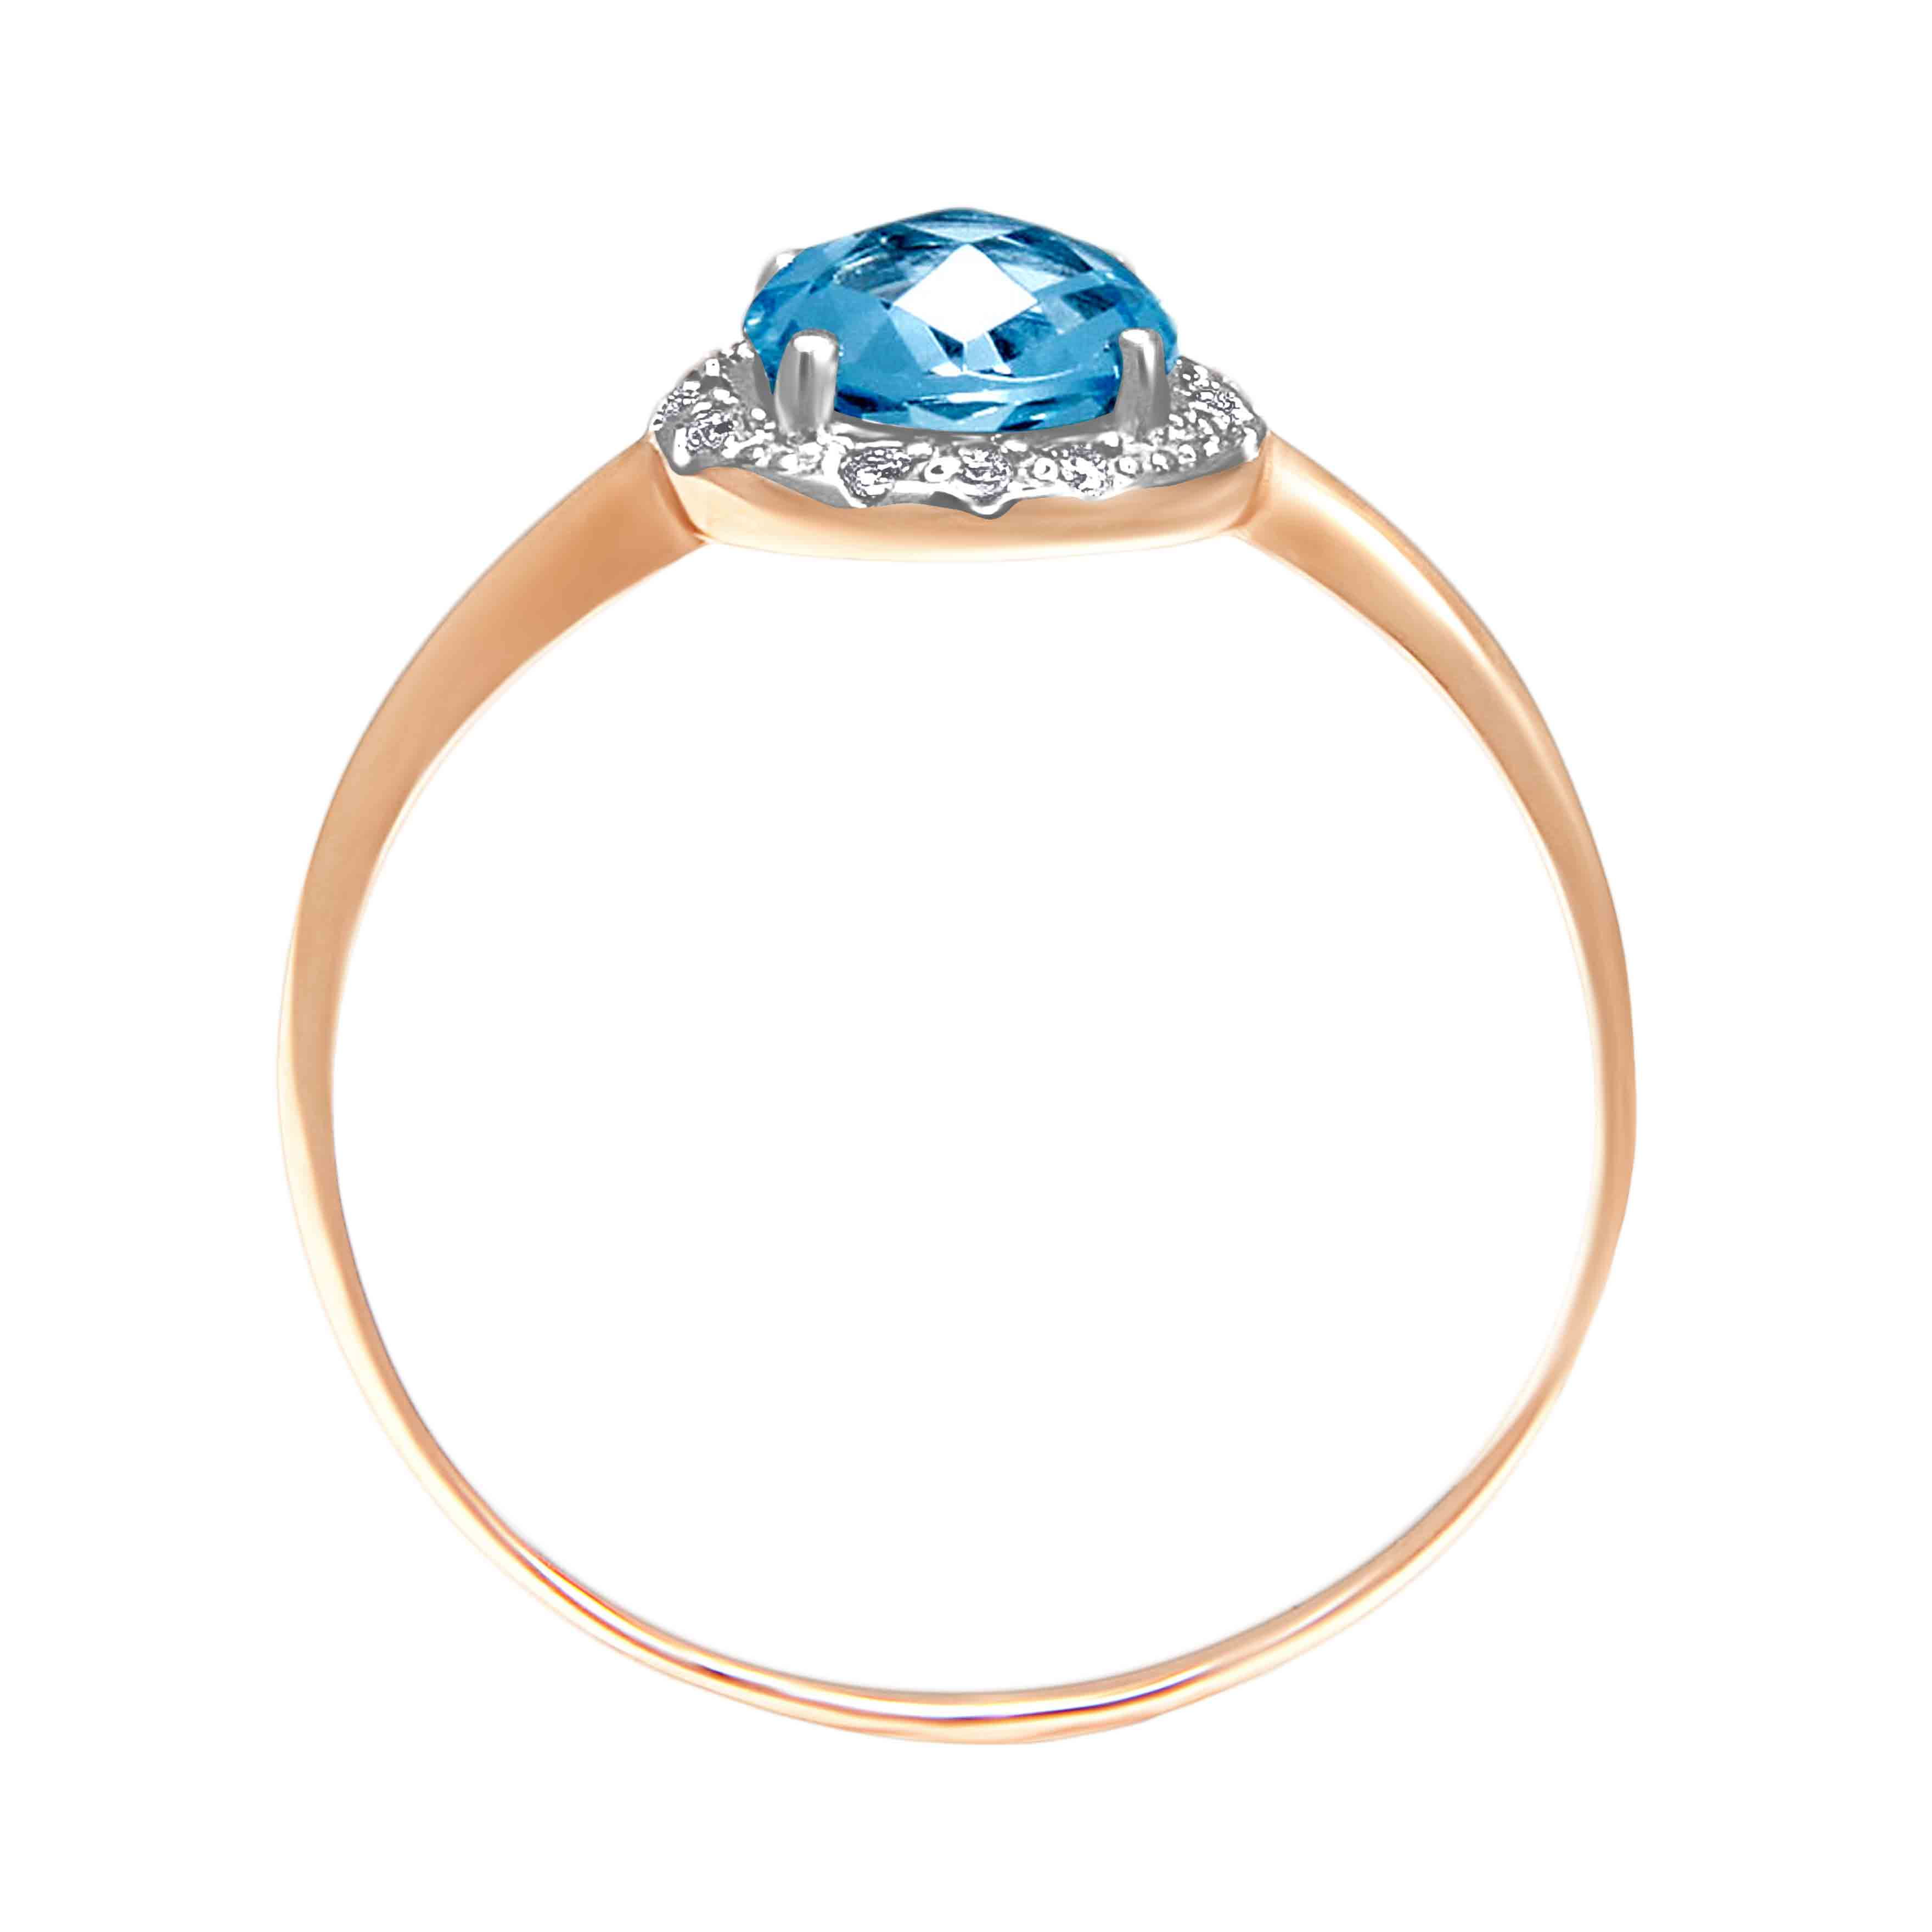 Fancy Cut Blue Topaz Ring. View 3